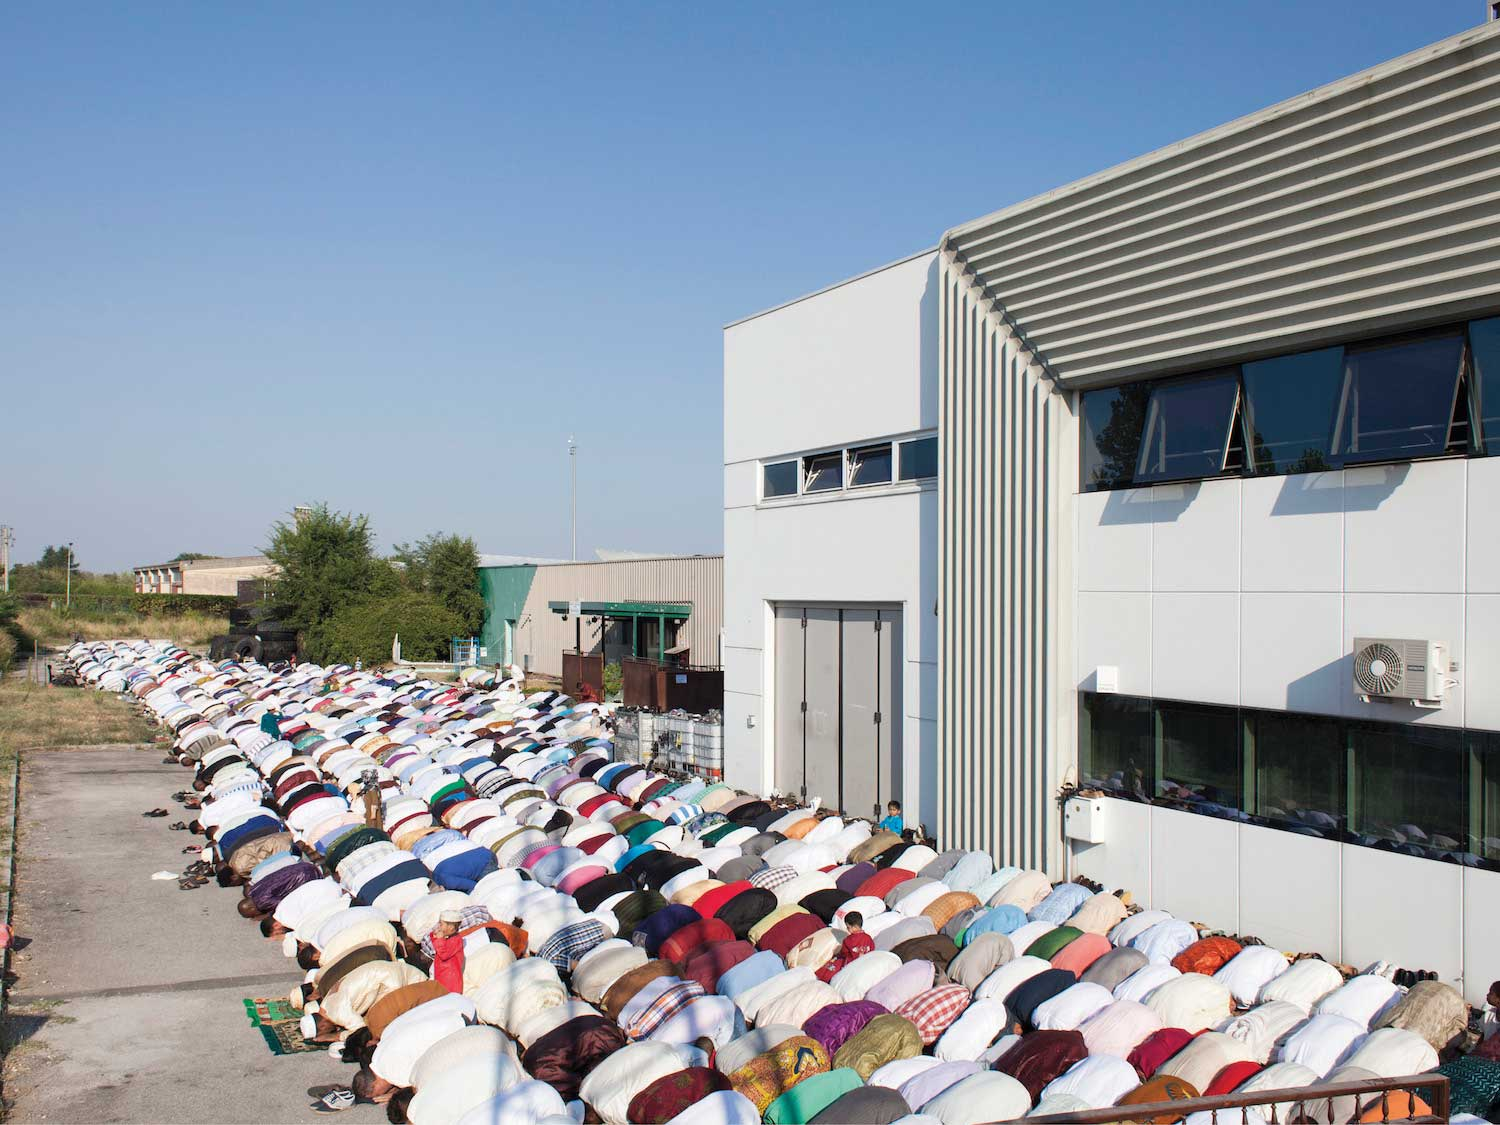 A warehouse used as a makeshift place of worship for Muslims in the Province of Treviso, Italy.